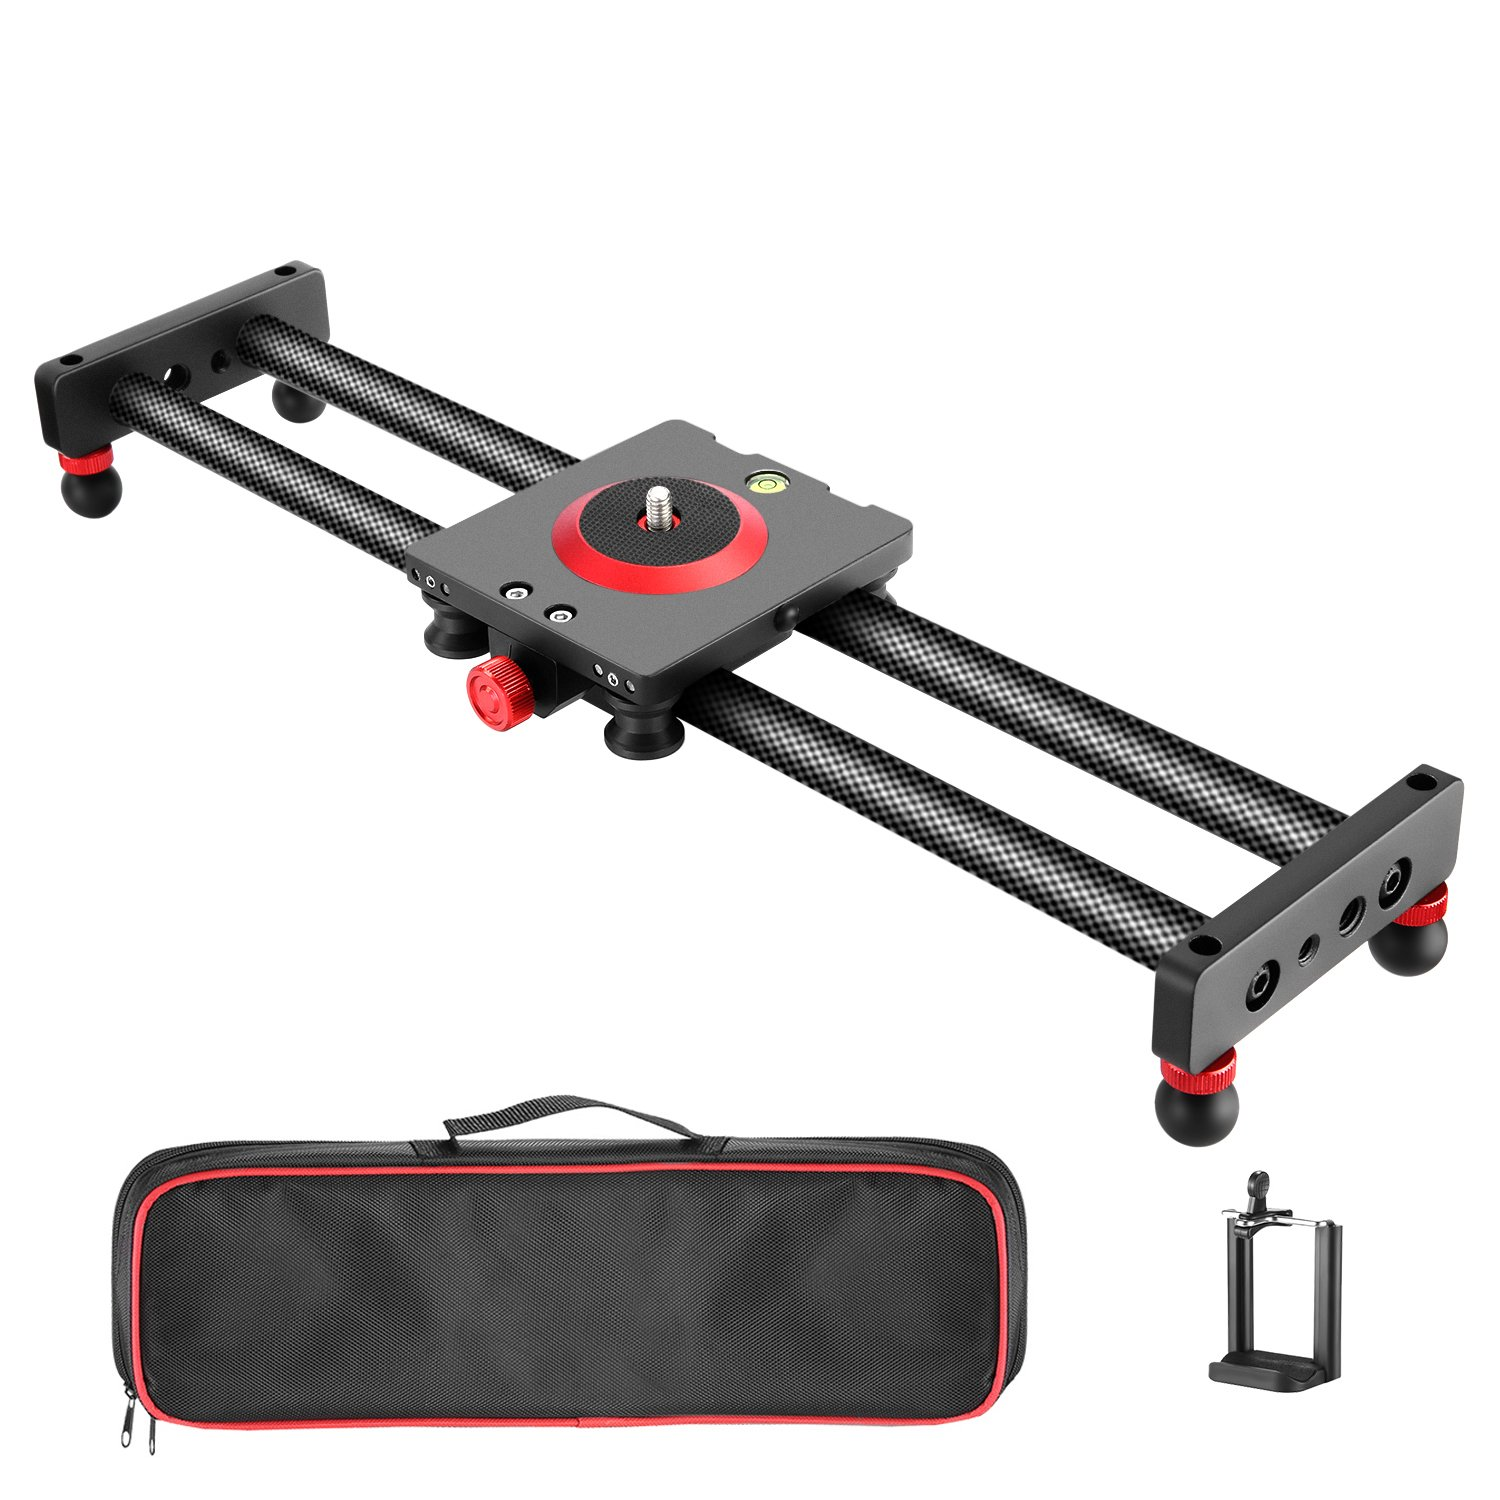 Neewer Camera Slider Carbon Fiber Dolly Rail, 19.7 inches/ 50 Centimeters with 4 Bearings for Smartphone Nikon Canon Sony Camera 12lbs Loading by Neewer